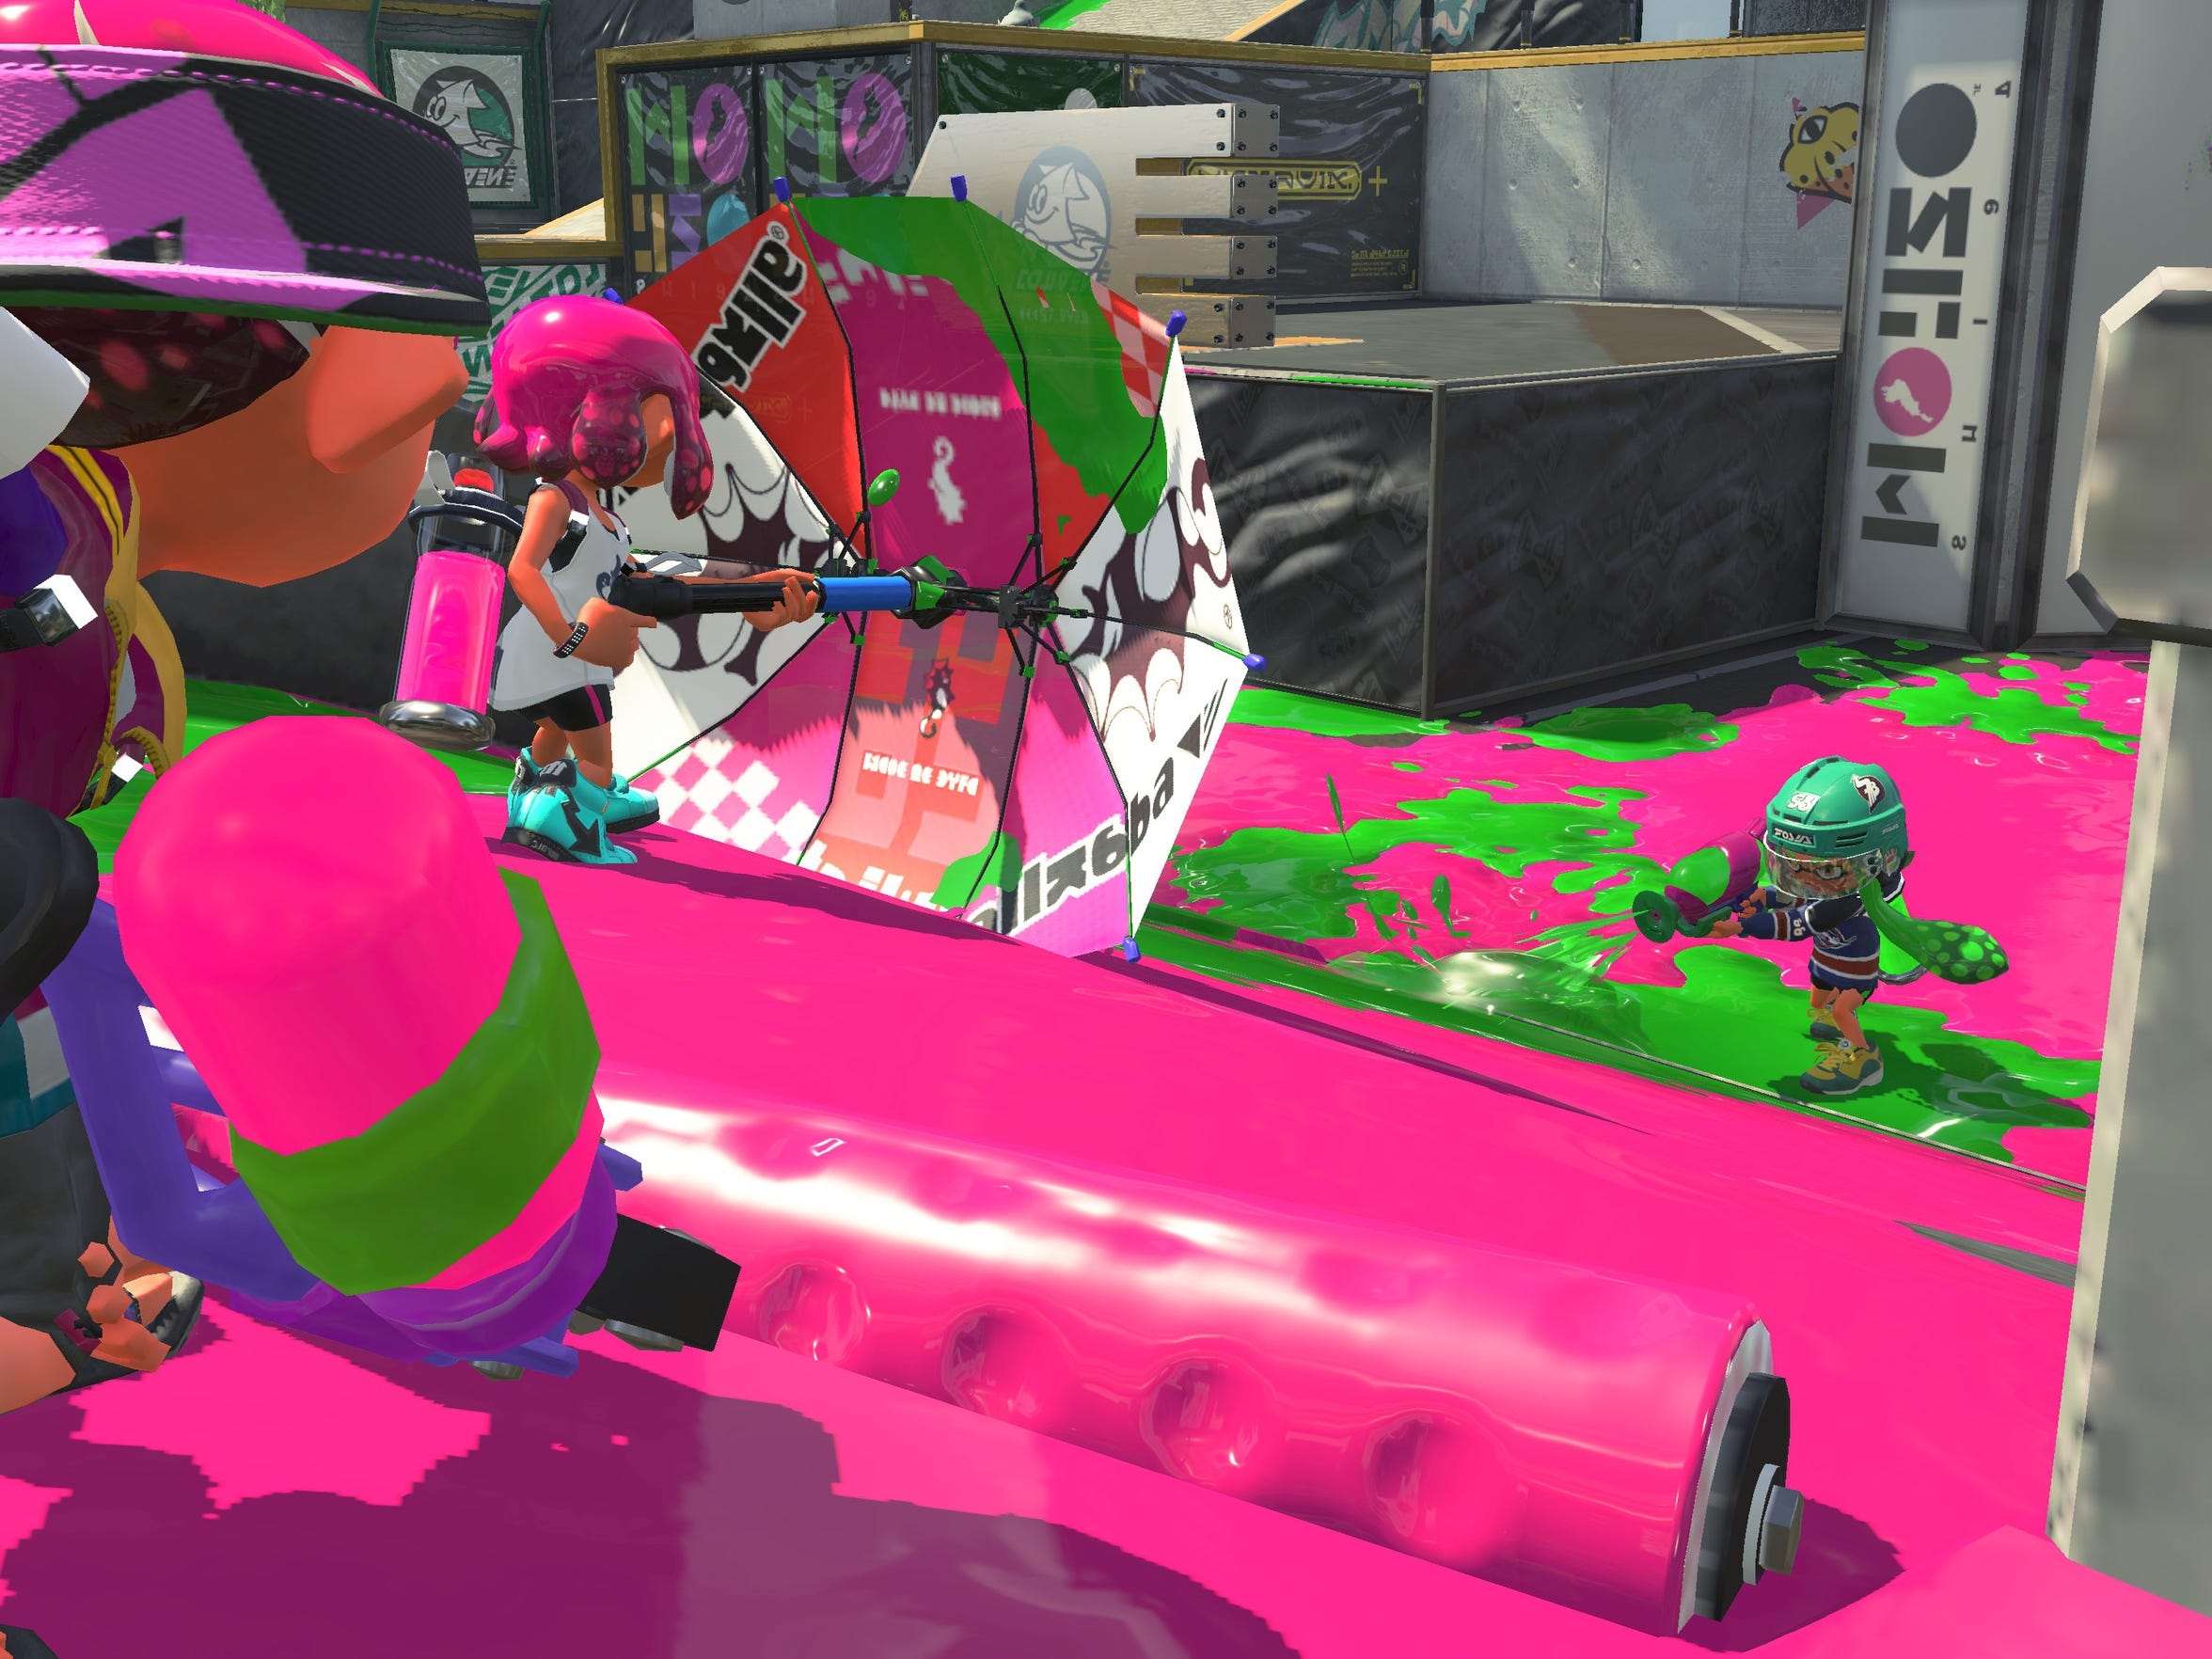 Splatoon 2 for the Nintendo Switch.